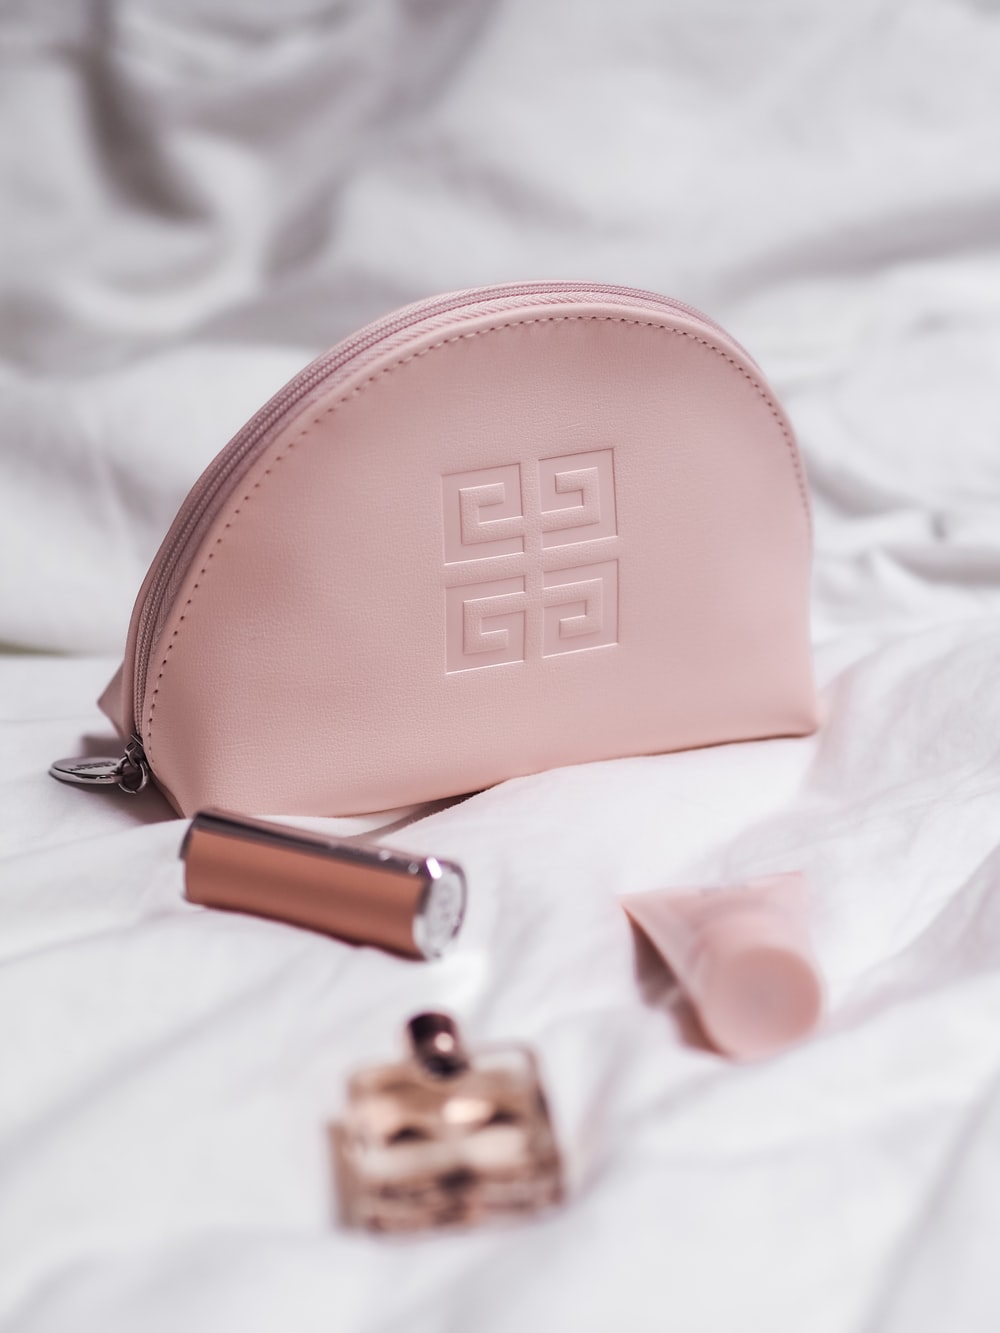 pink leather sling bag on white textile